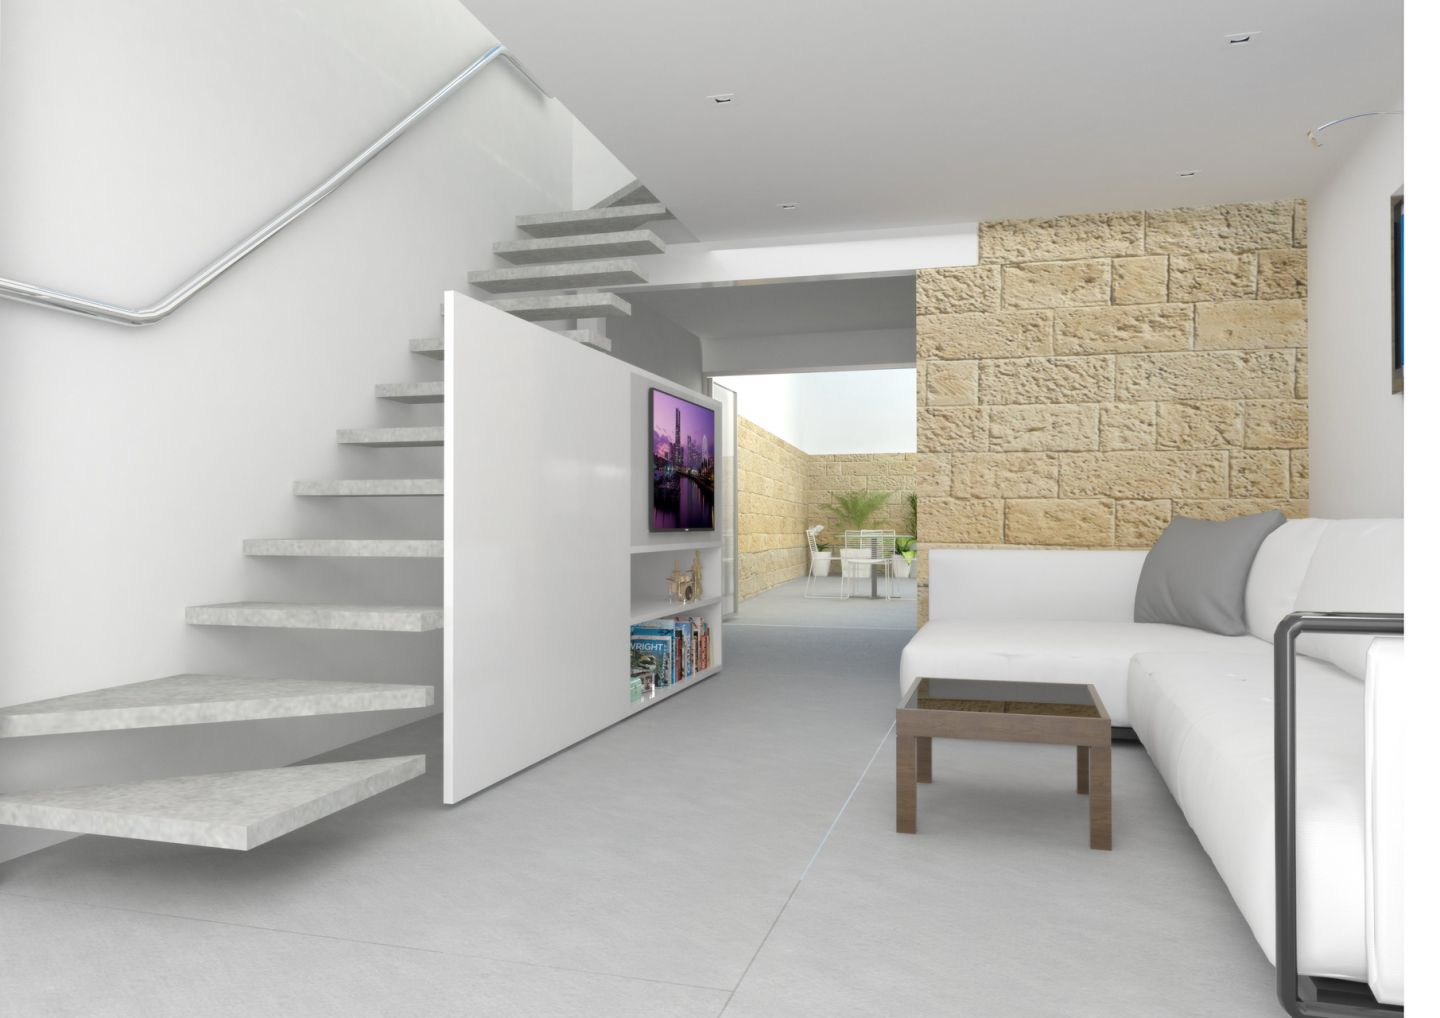 3 Bed Townhouse for sale in POLLENSA 17